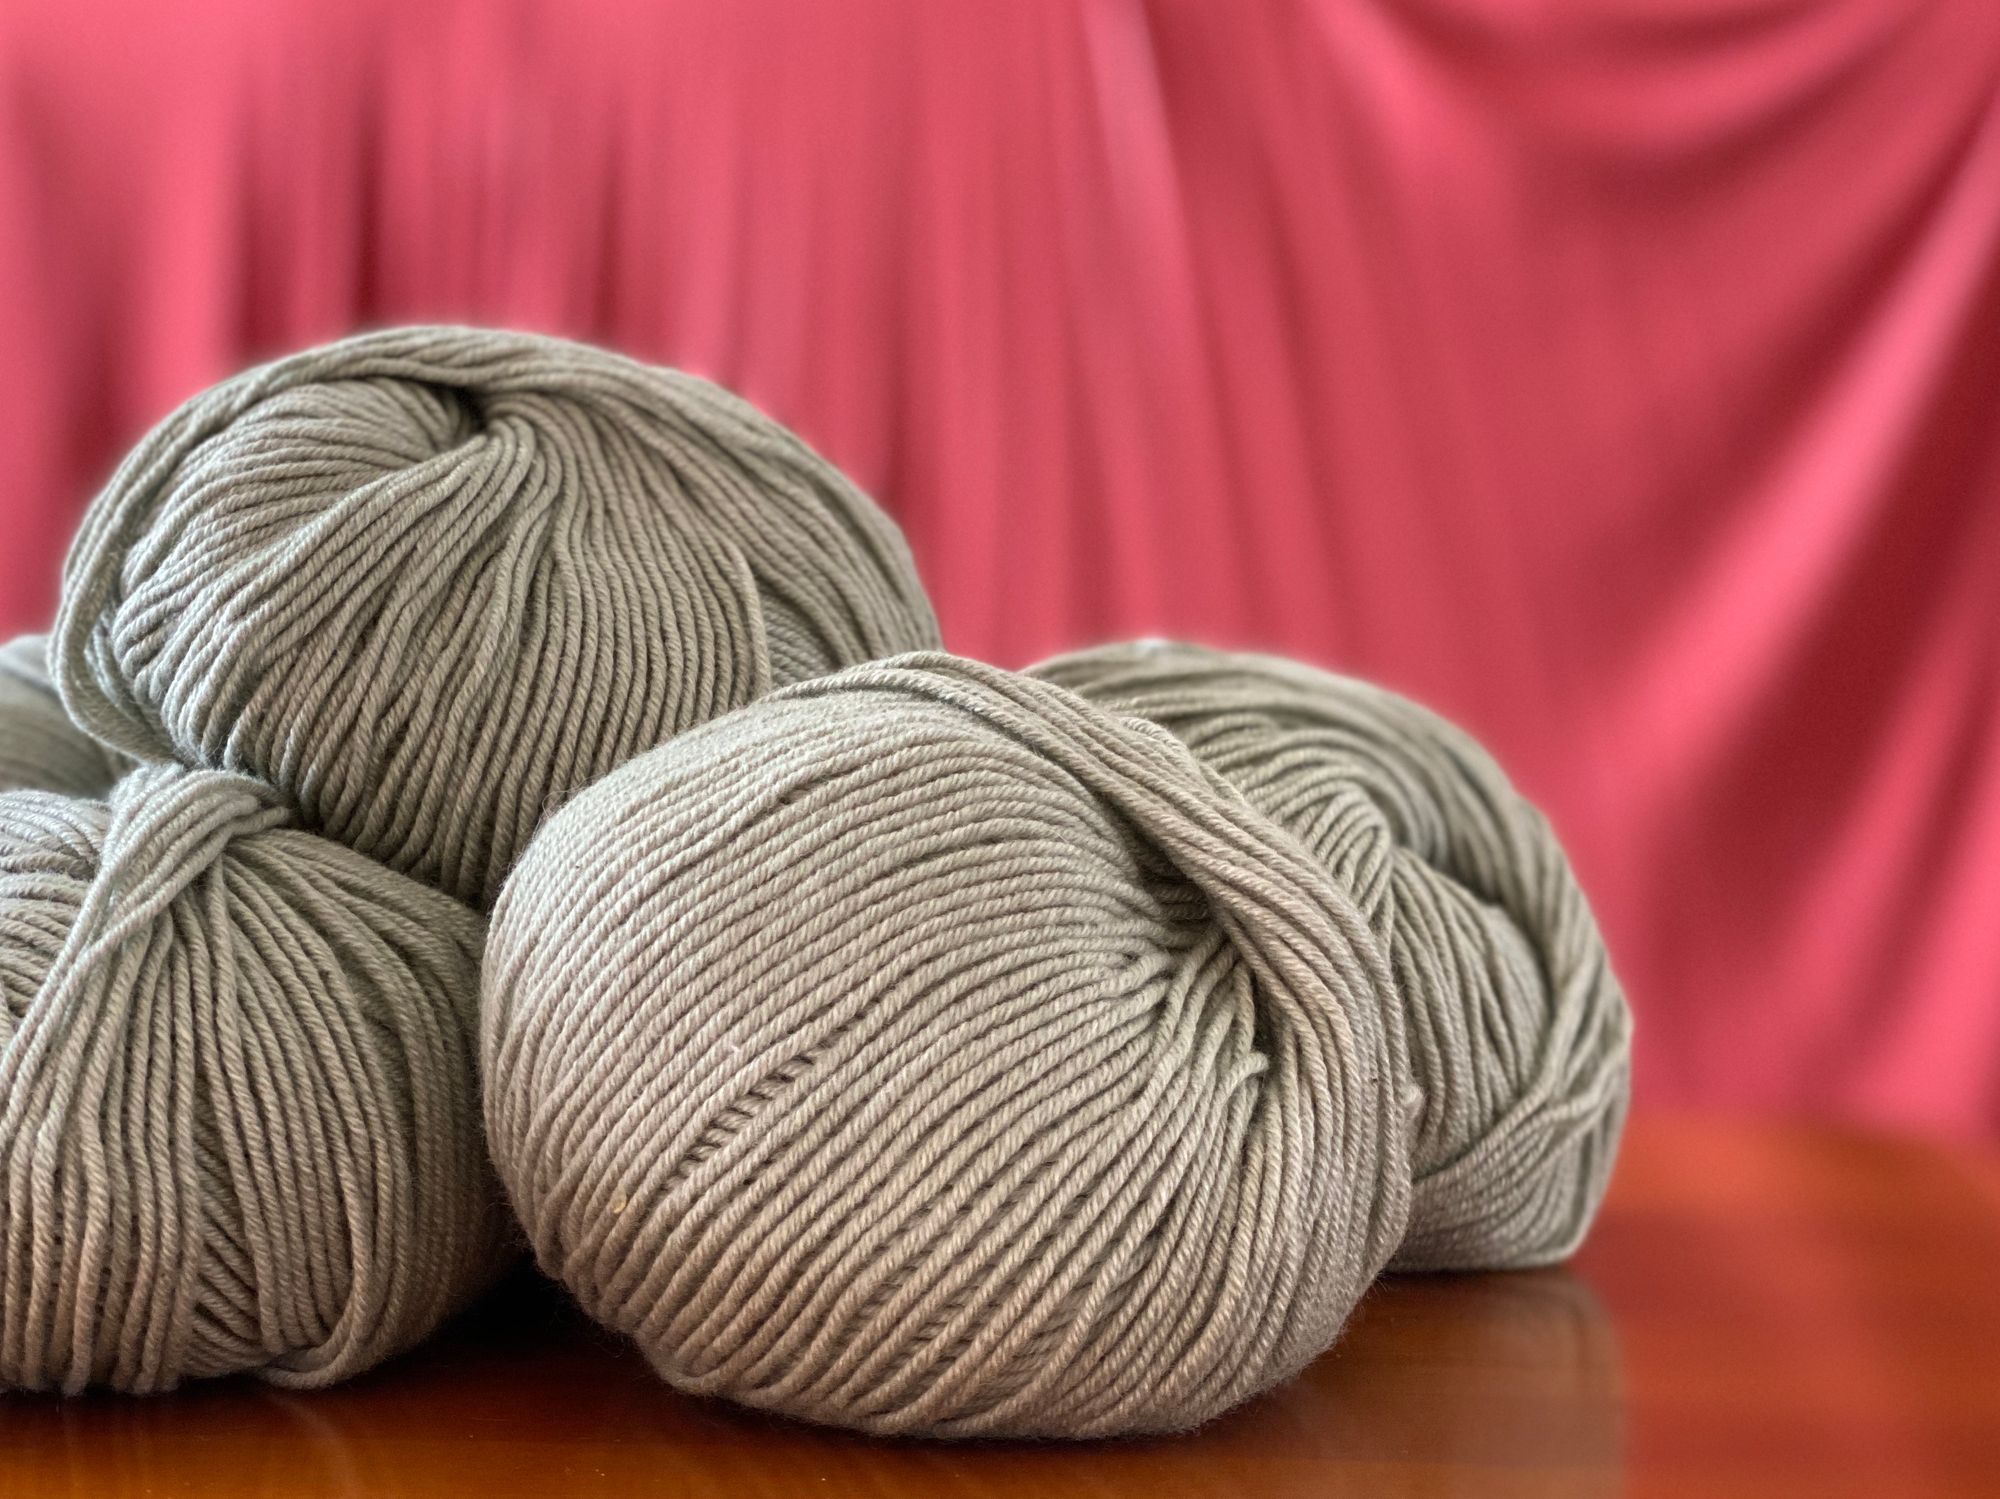 balls of yarn in a light sage green against a rich coral draped fabric background